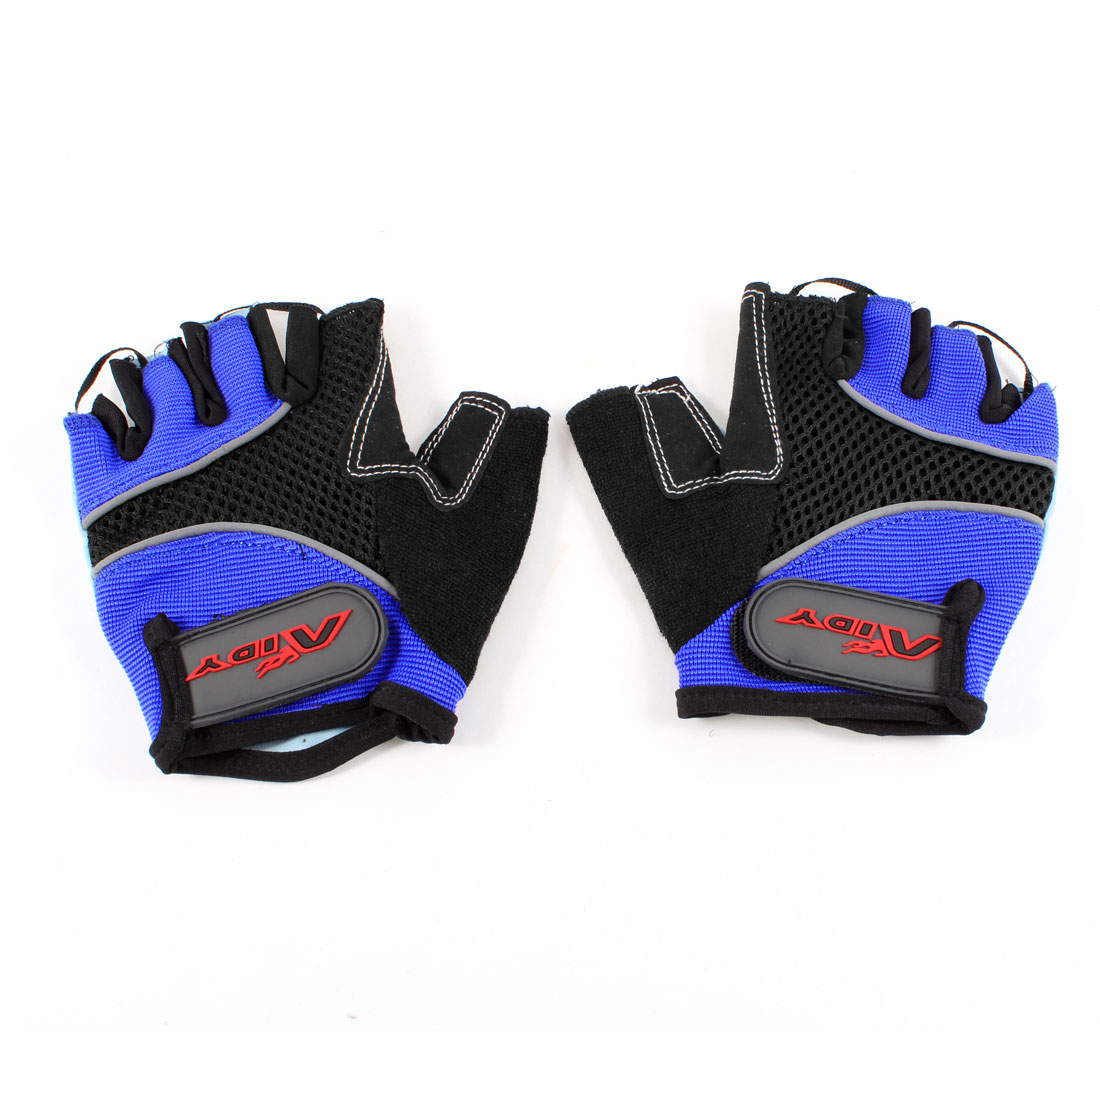 Pair Blue Black Half Finger Skidproof Breathable Sports Cycling Gloves Size S